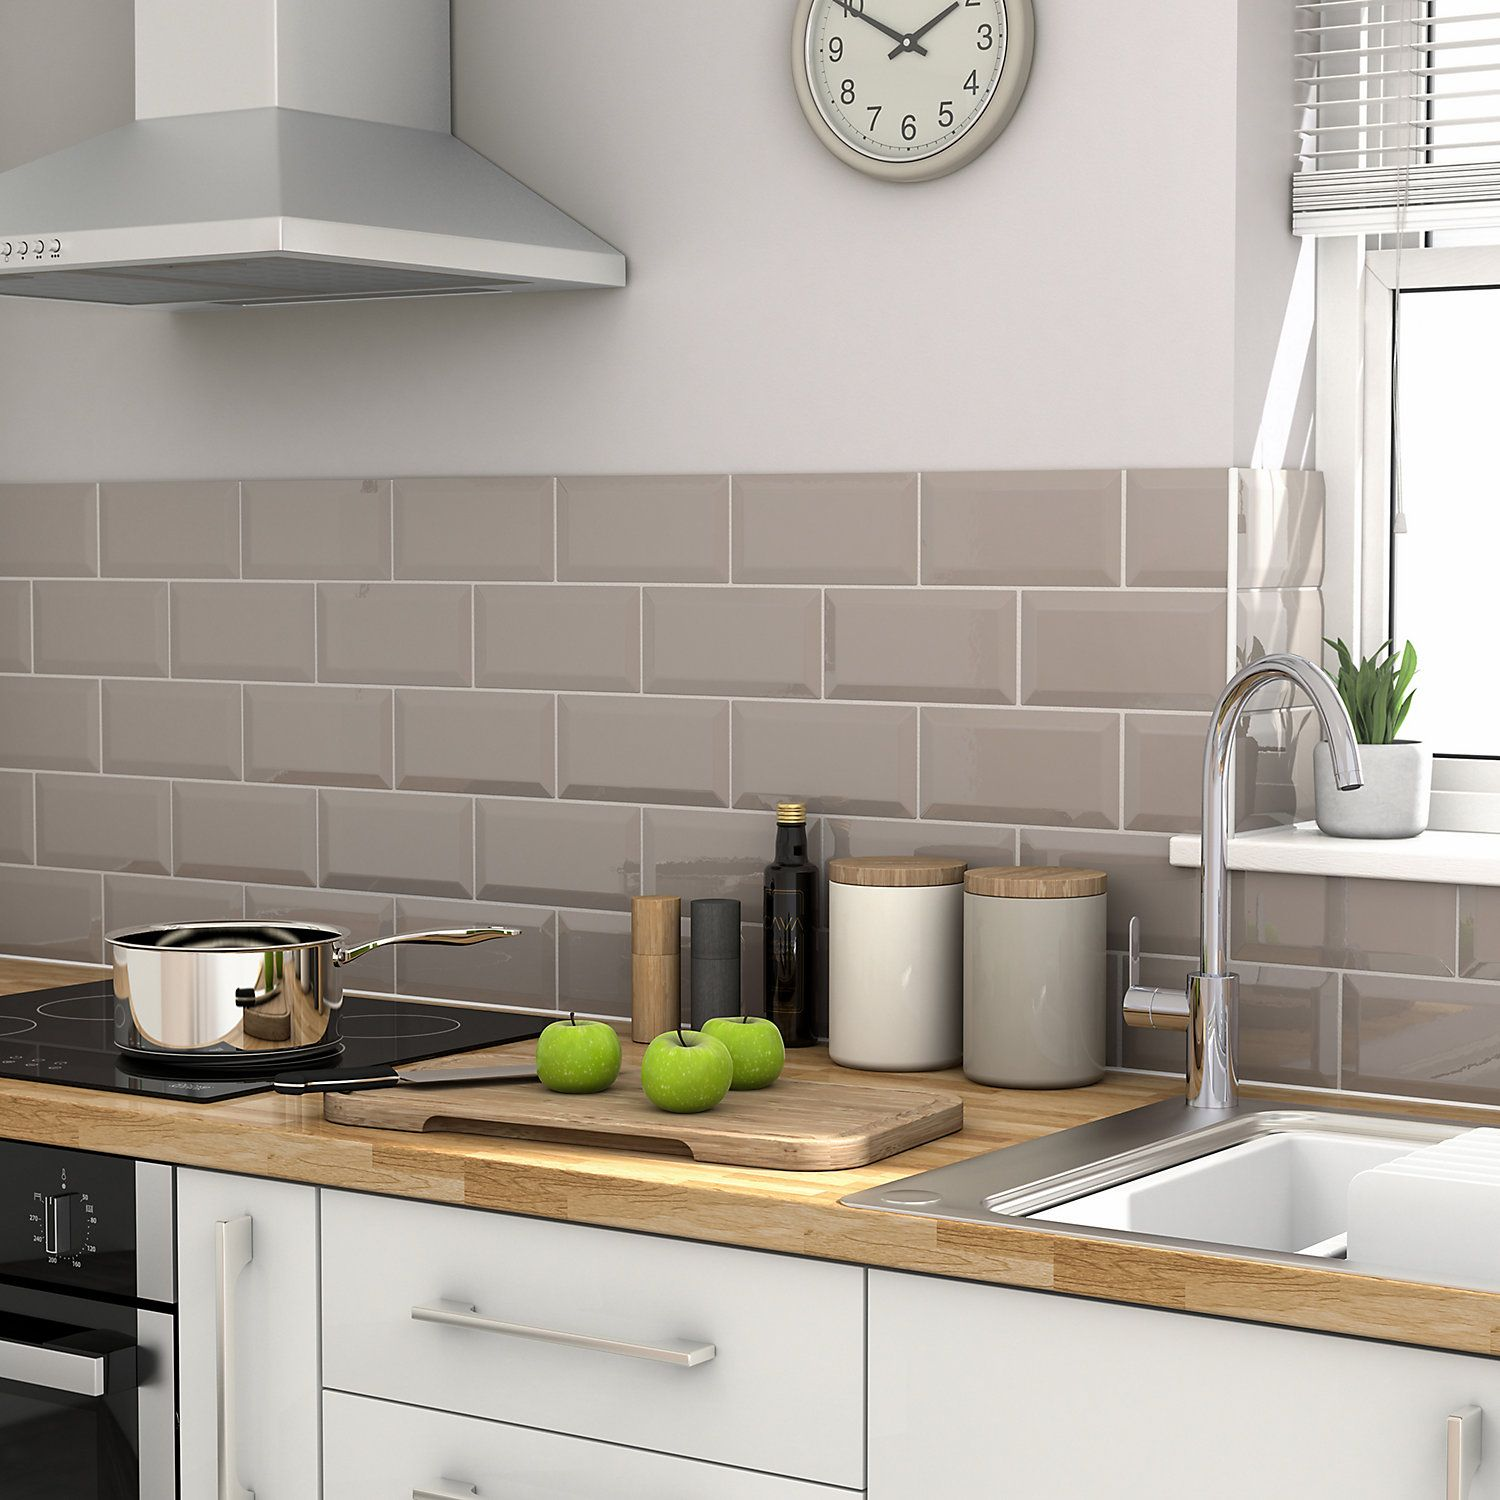 Trentie Taupe Gloss Ceramic Wall Tile Pack Of 40 L 200mm W 100mm Kitchen Flooring Kitchen Floor Tile Kitchen Wall Tiles